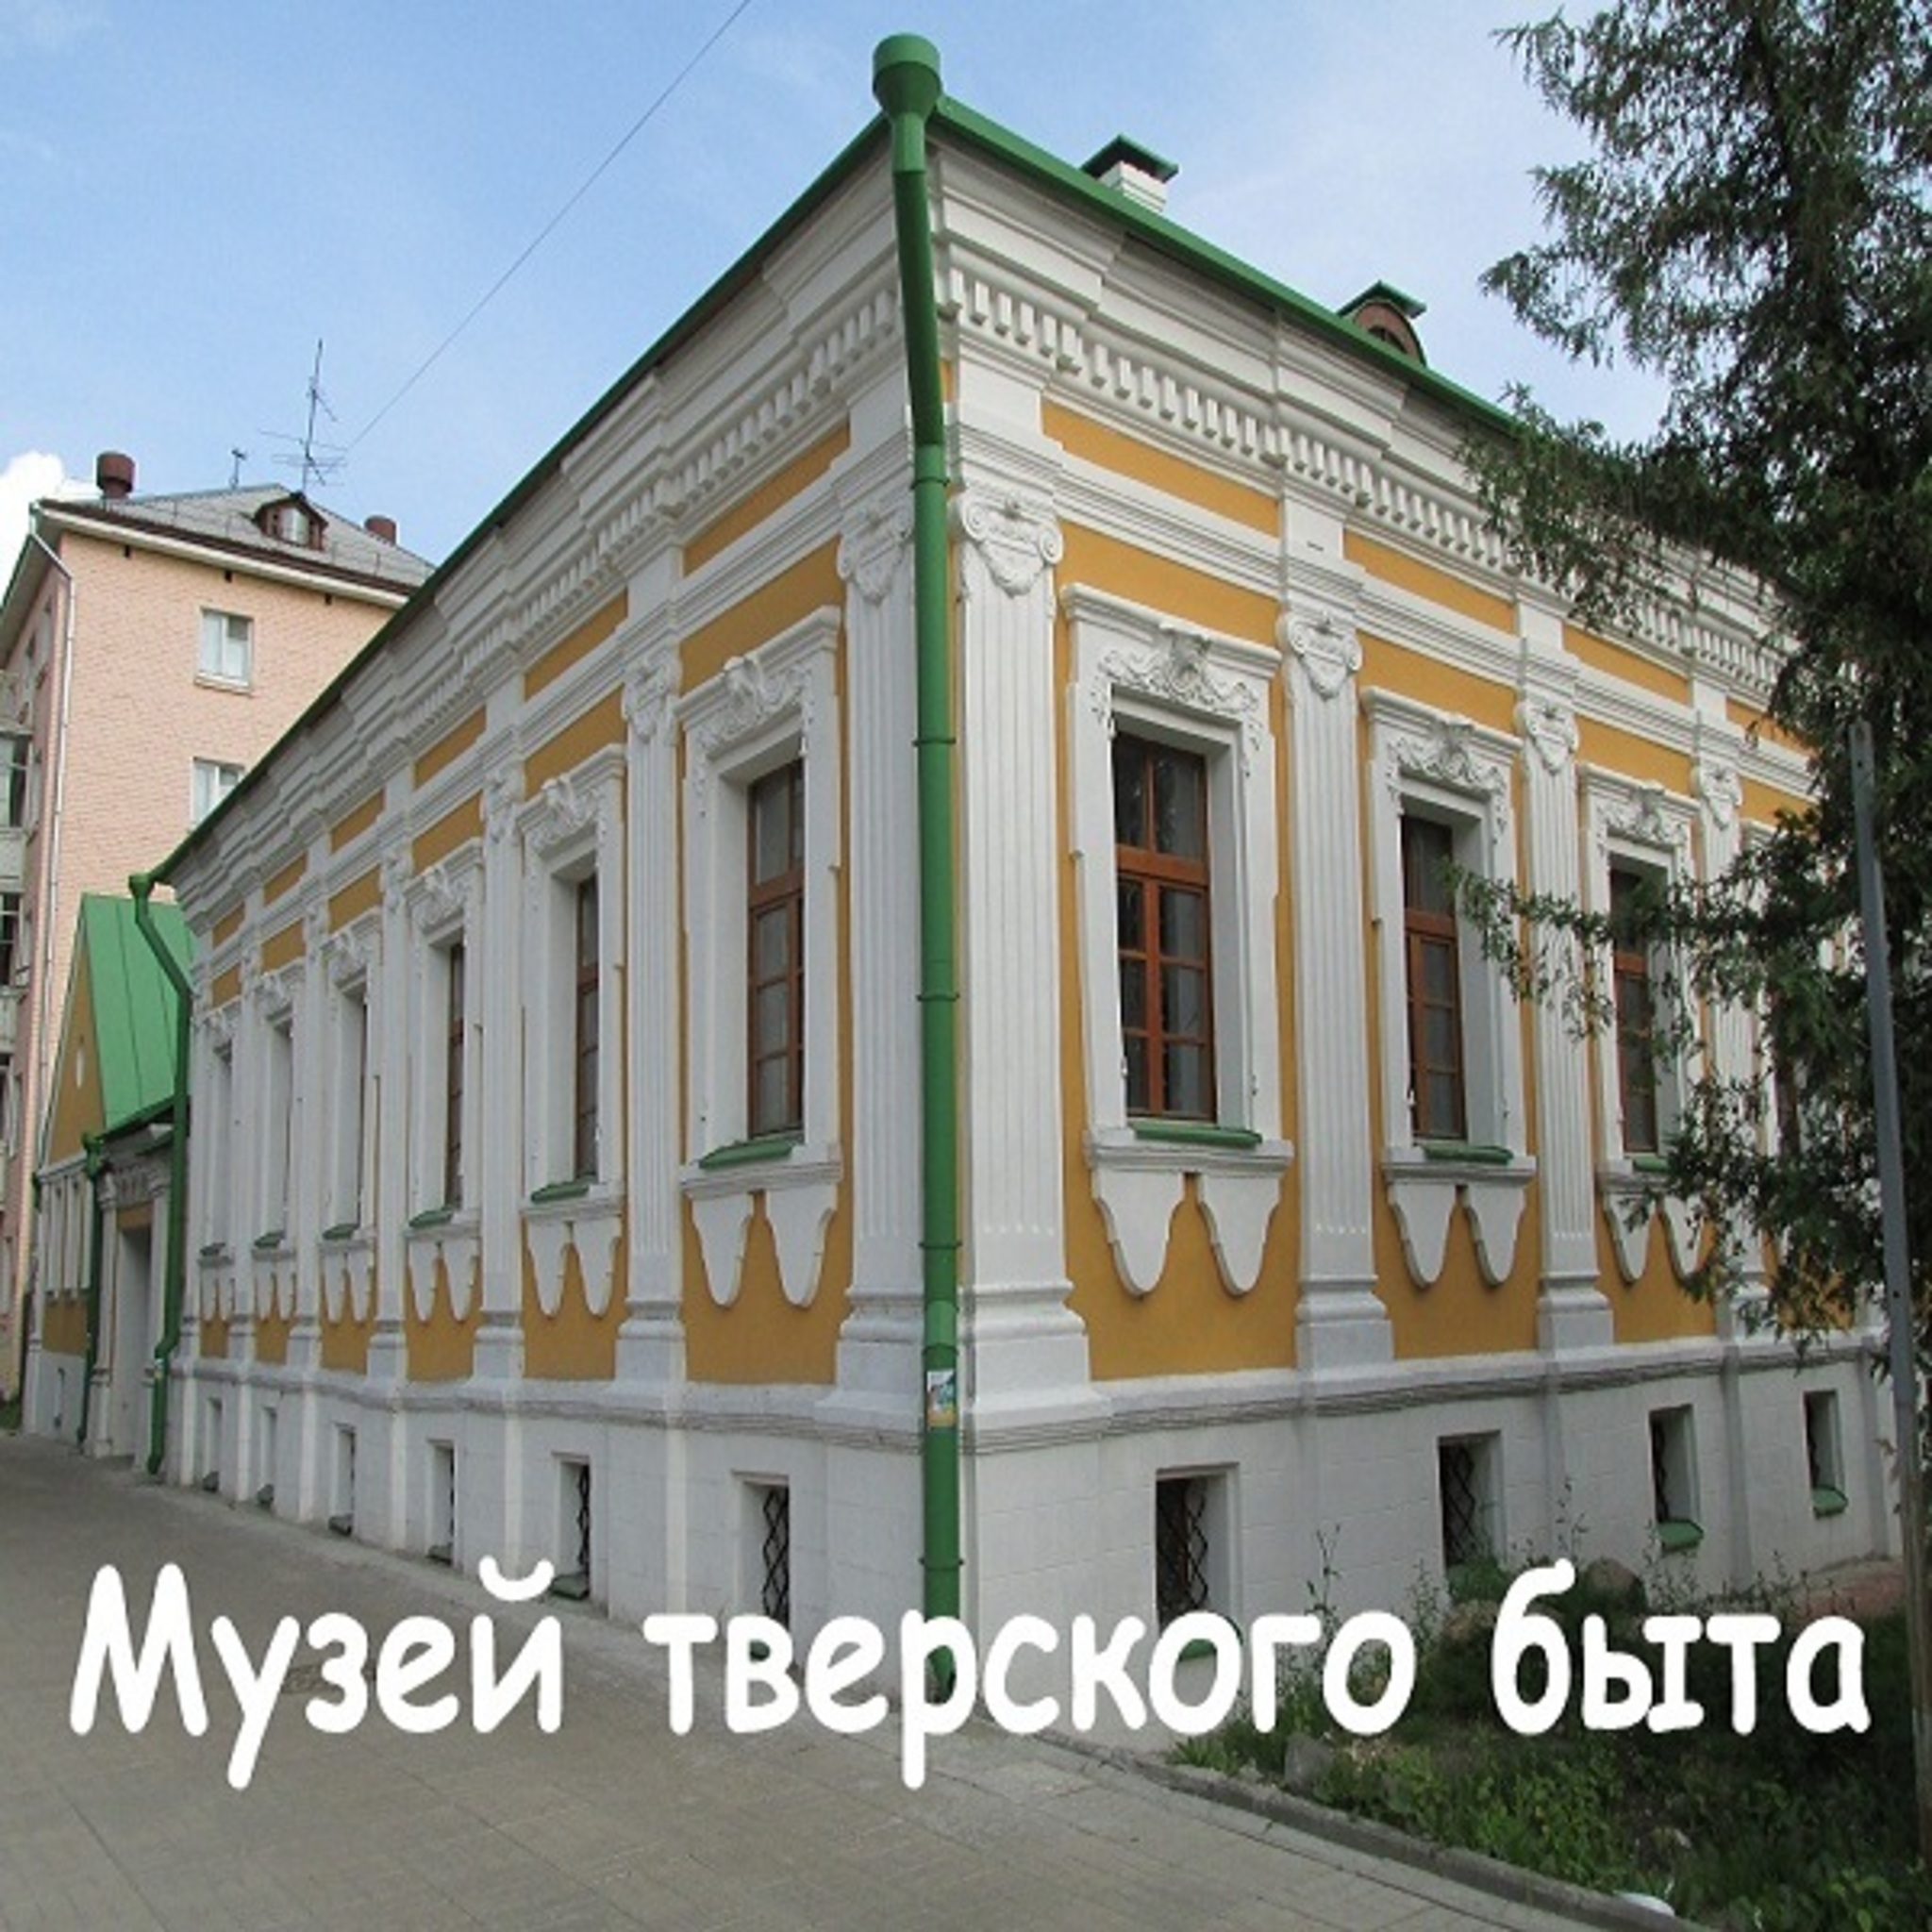 The Museum of the Tver household